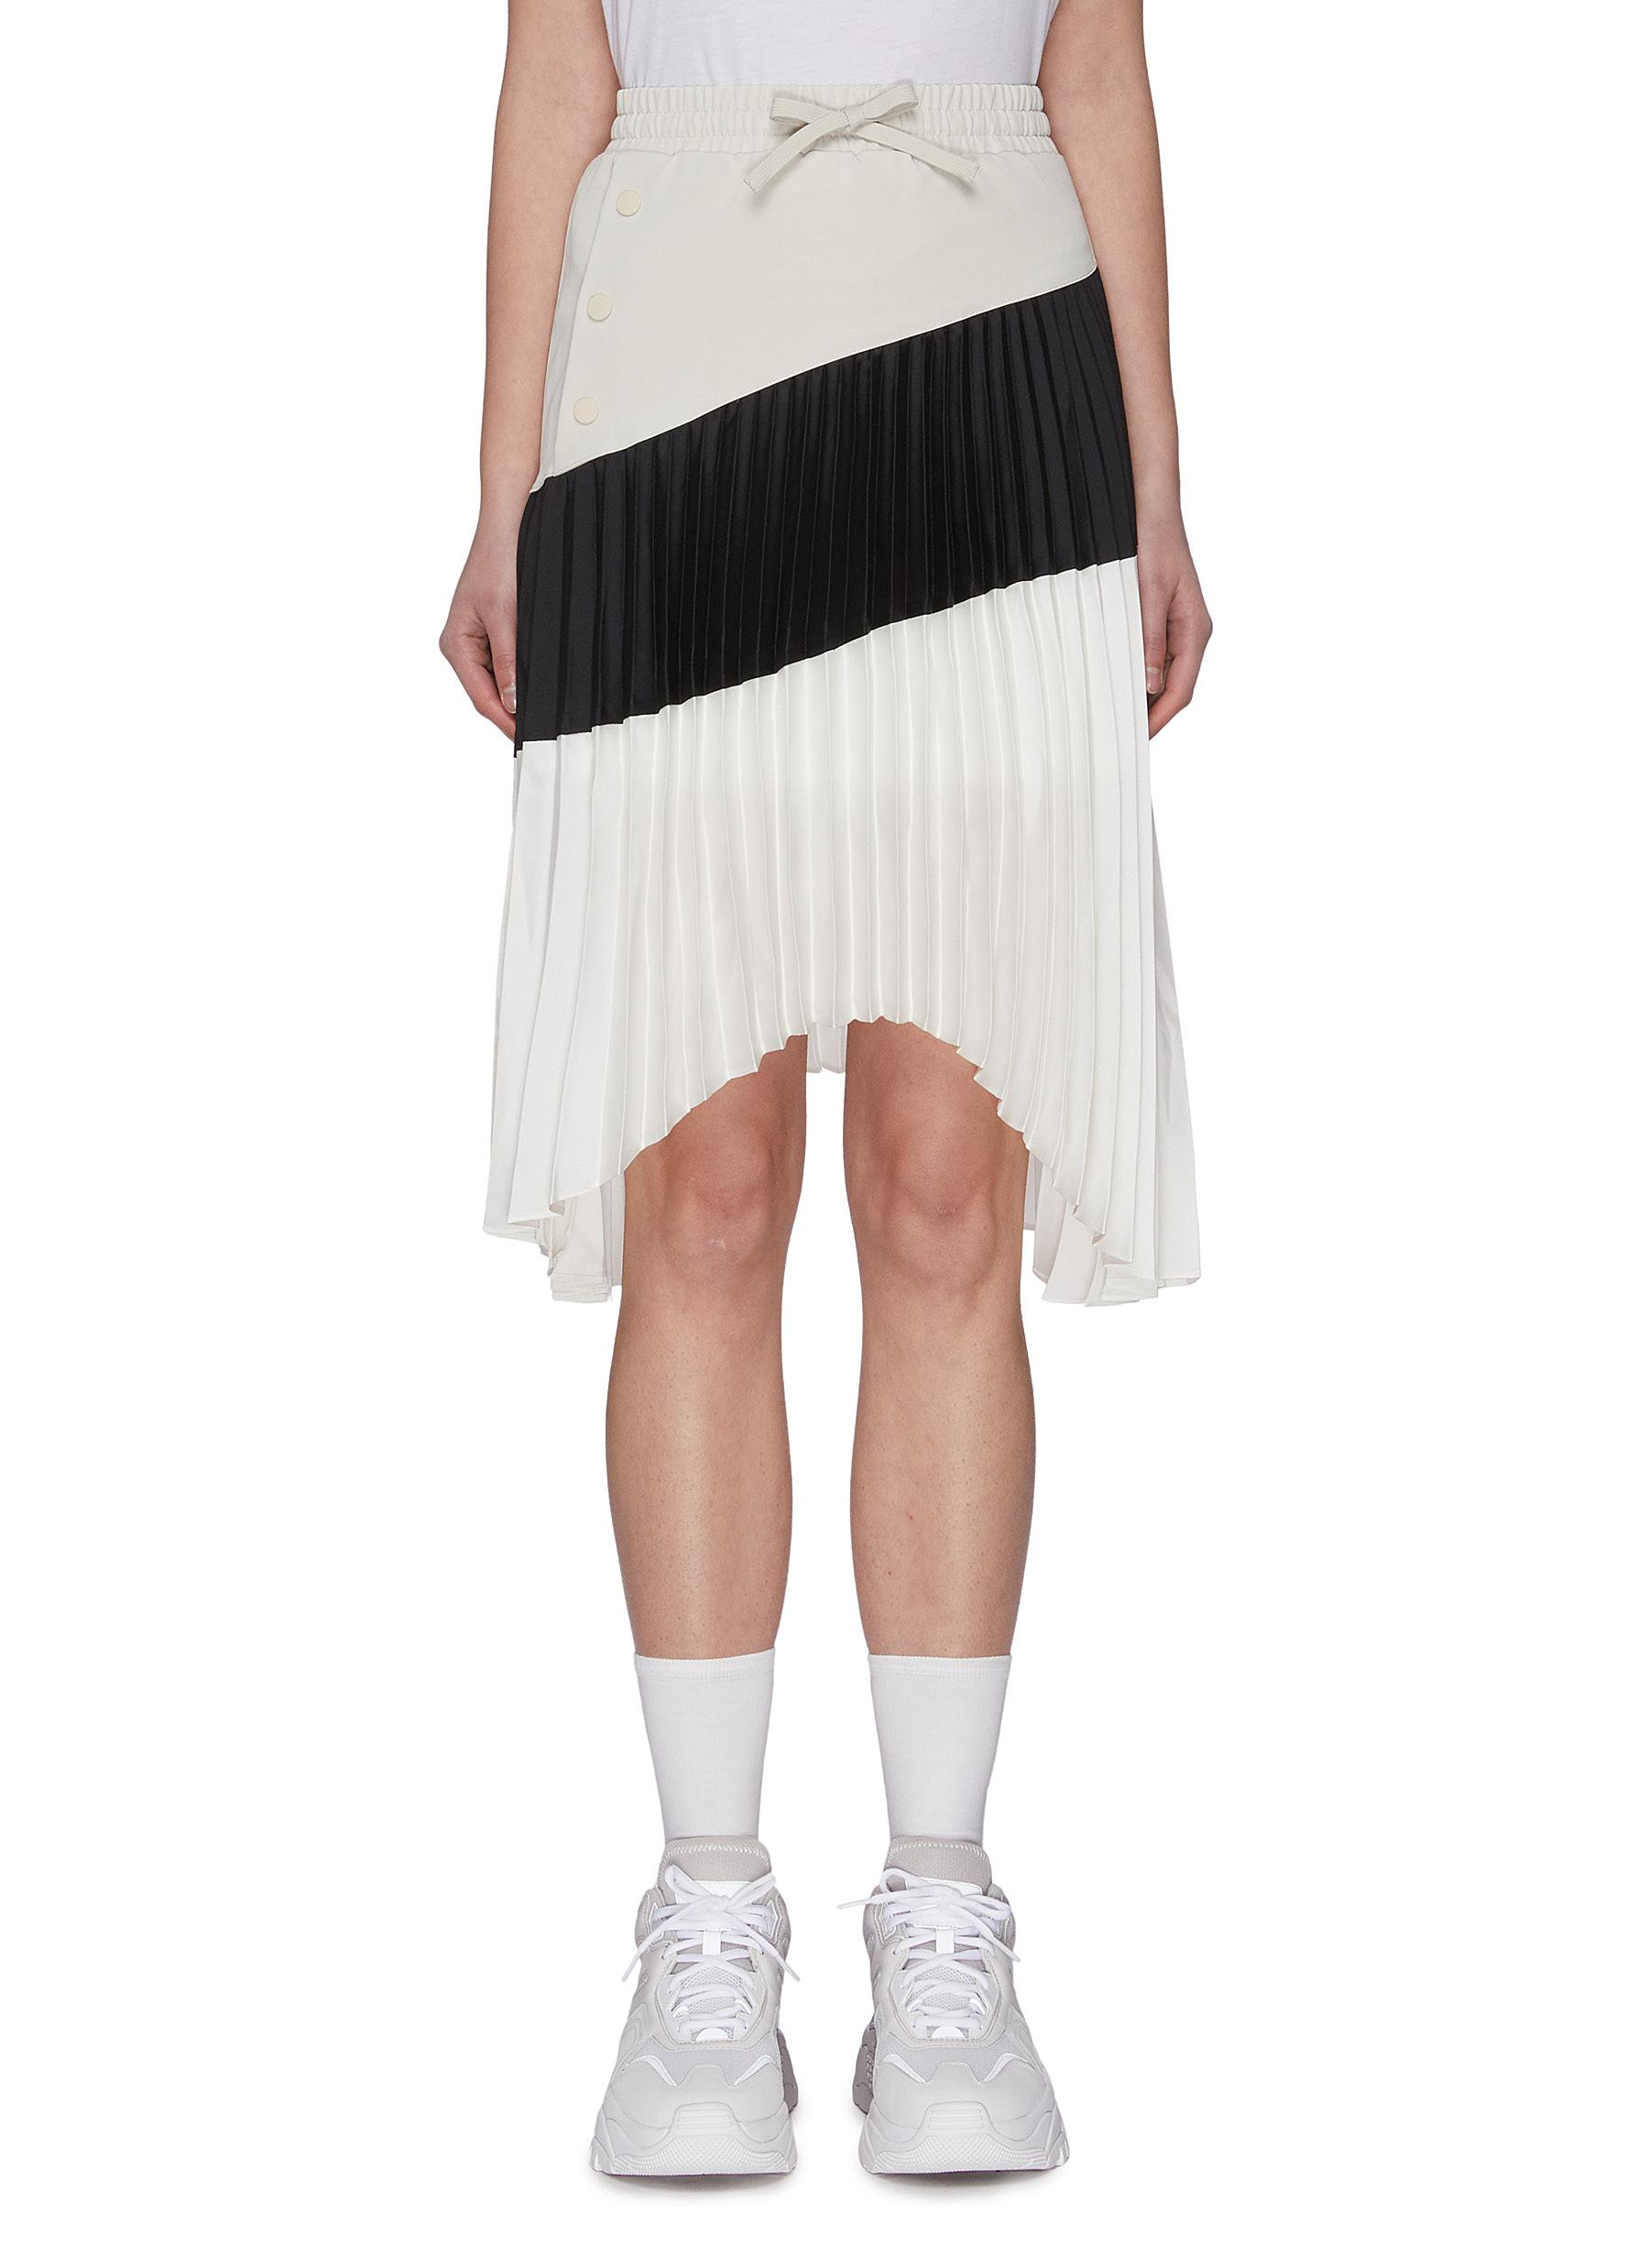 Buy Fila X 3.1 Phillip Lim Skirts Asymmetric colourblock pleated skirt